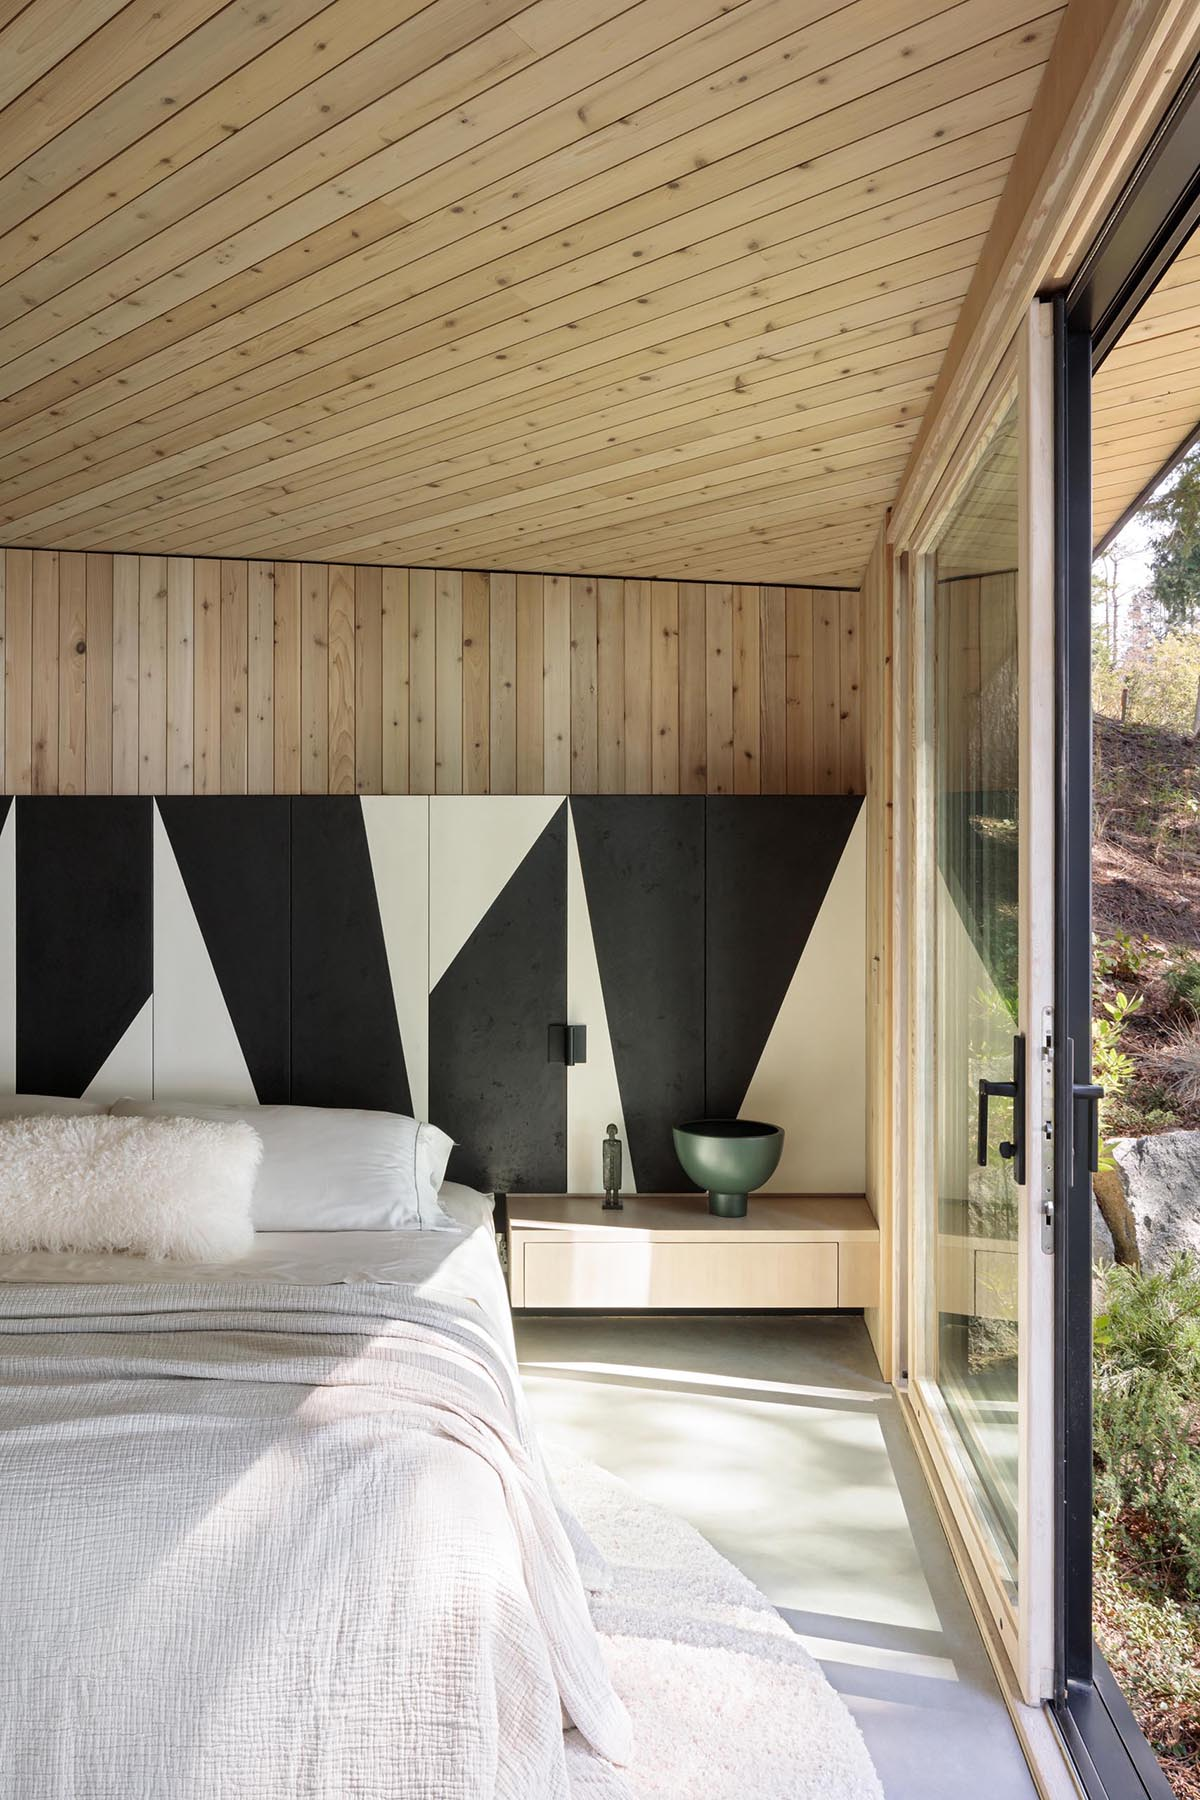 This modern bedroom makes the most of the view by having a wall of windows, while a black and white partial accent wall wraps around the room, and adds an artistic element to the space.